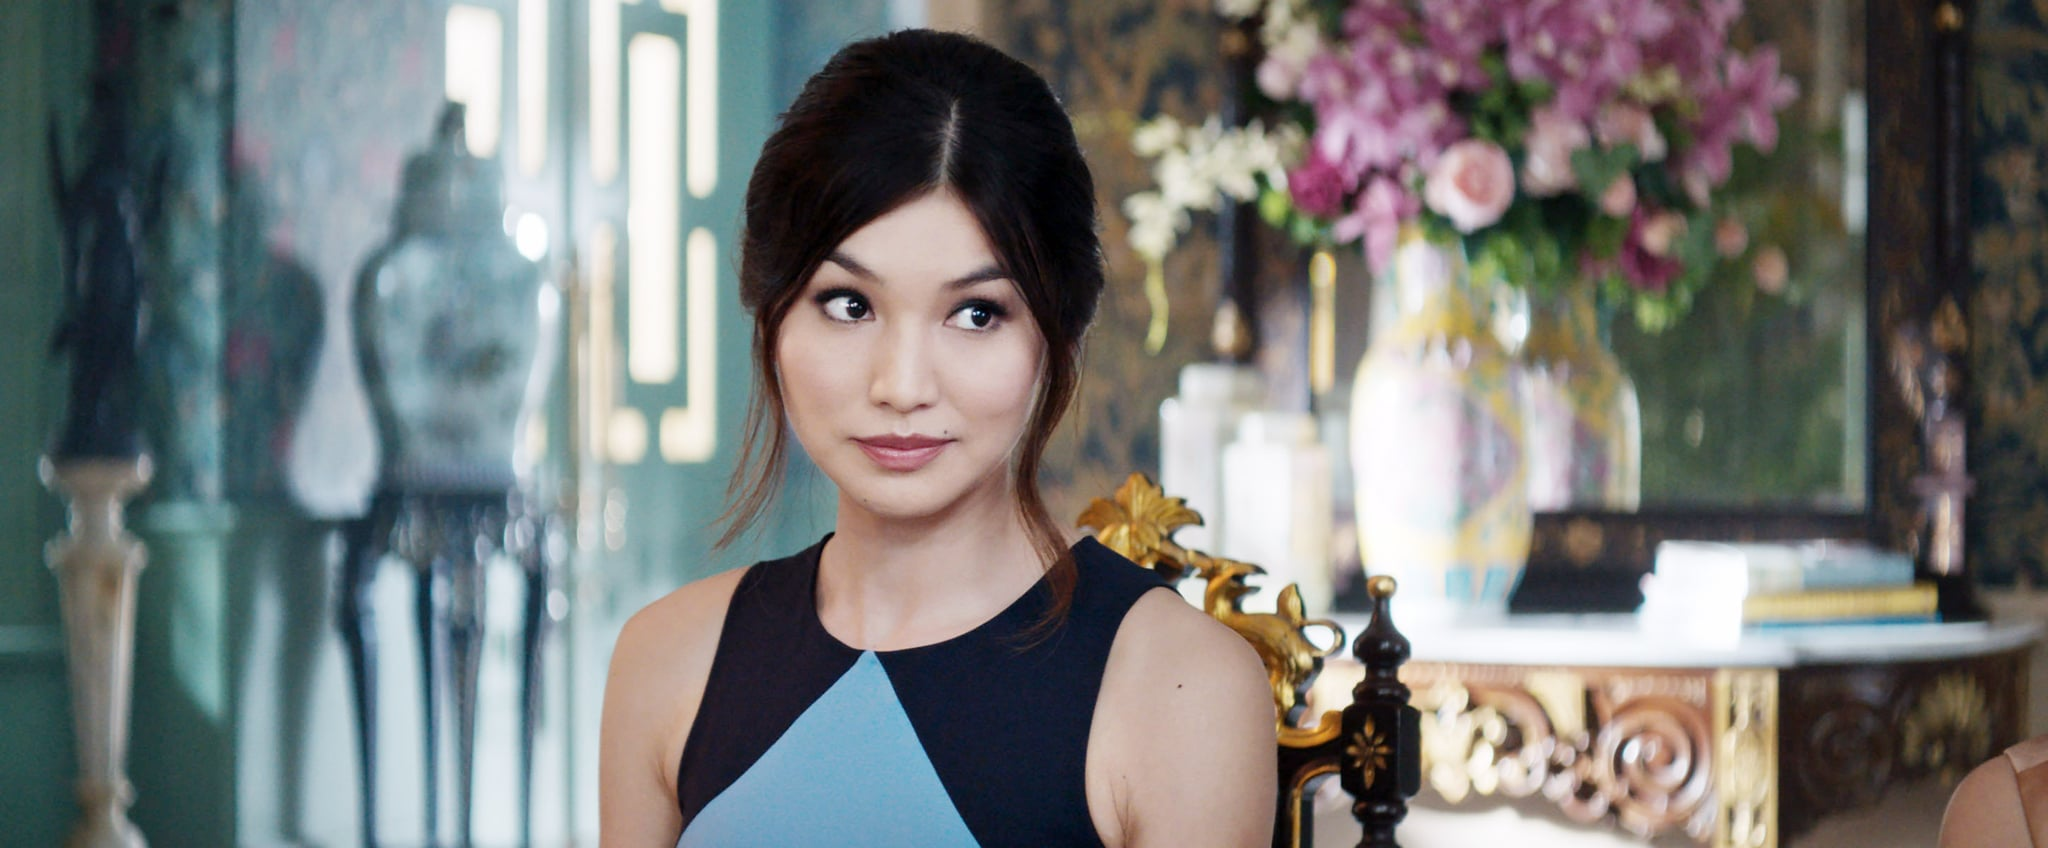 CRAZY RICH ASIANS, Gemma Chan, 2018.  Warner Bros. Pictures/courtesy Everett Collection